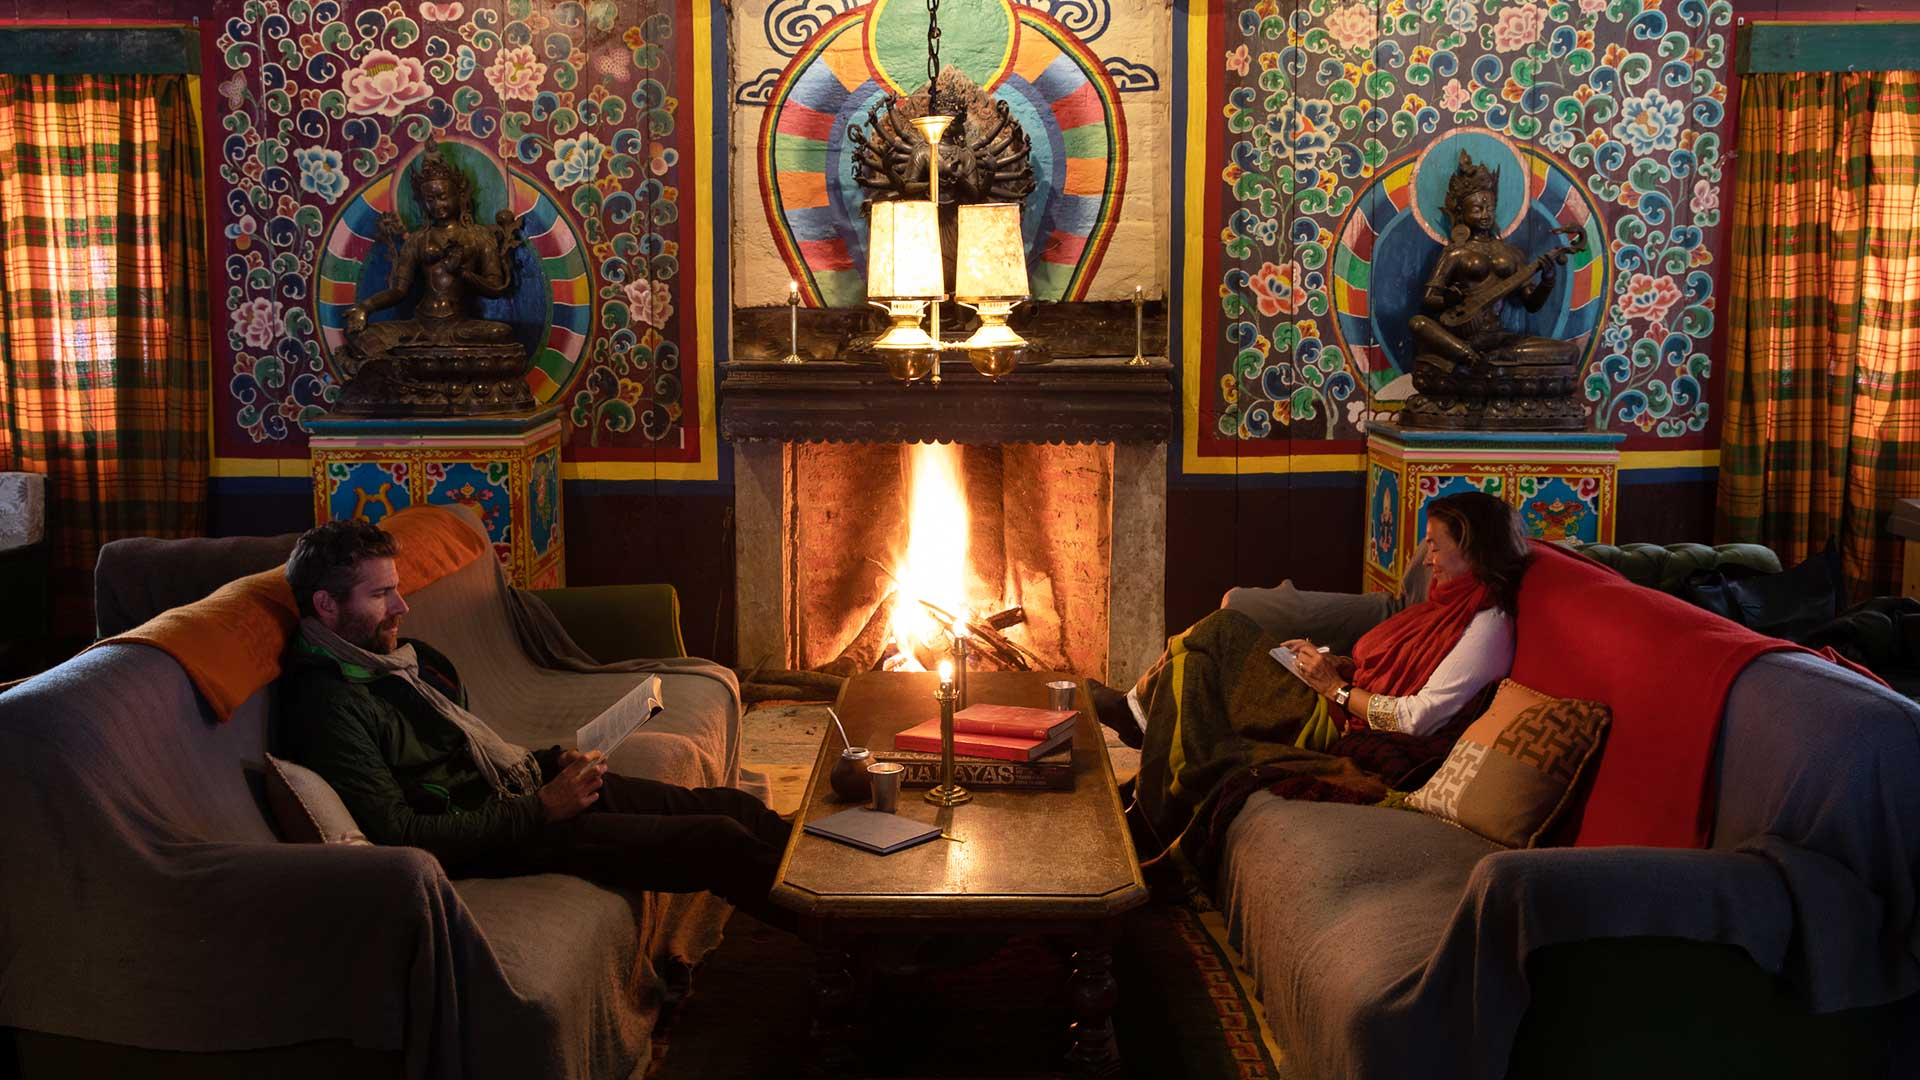 Cozy by the fire at The Happy House